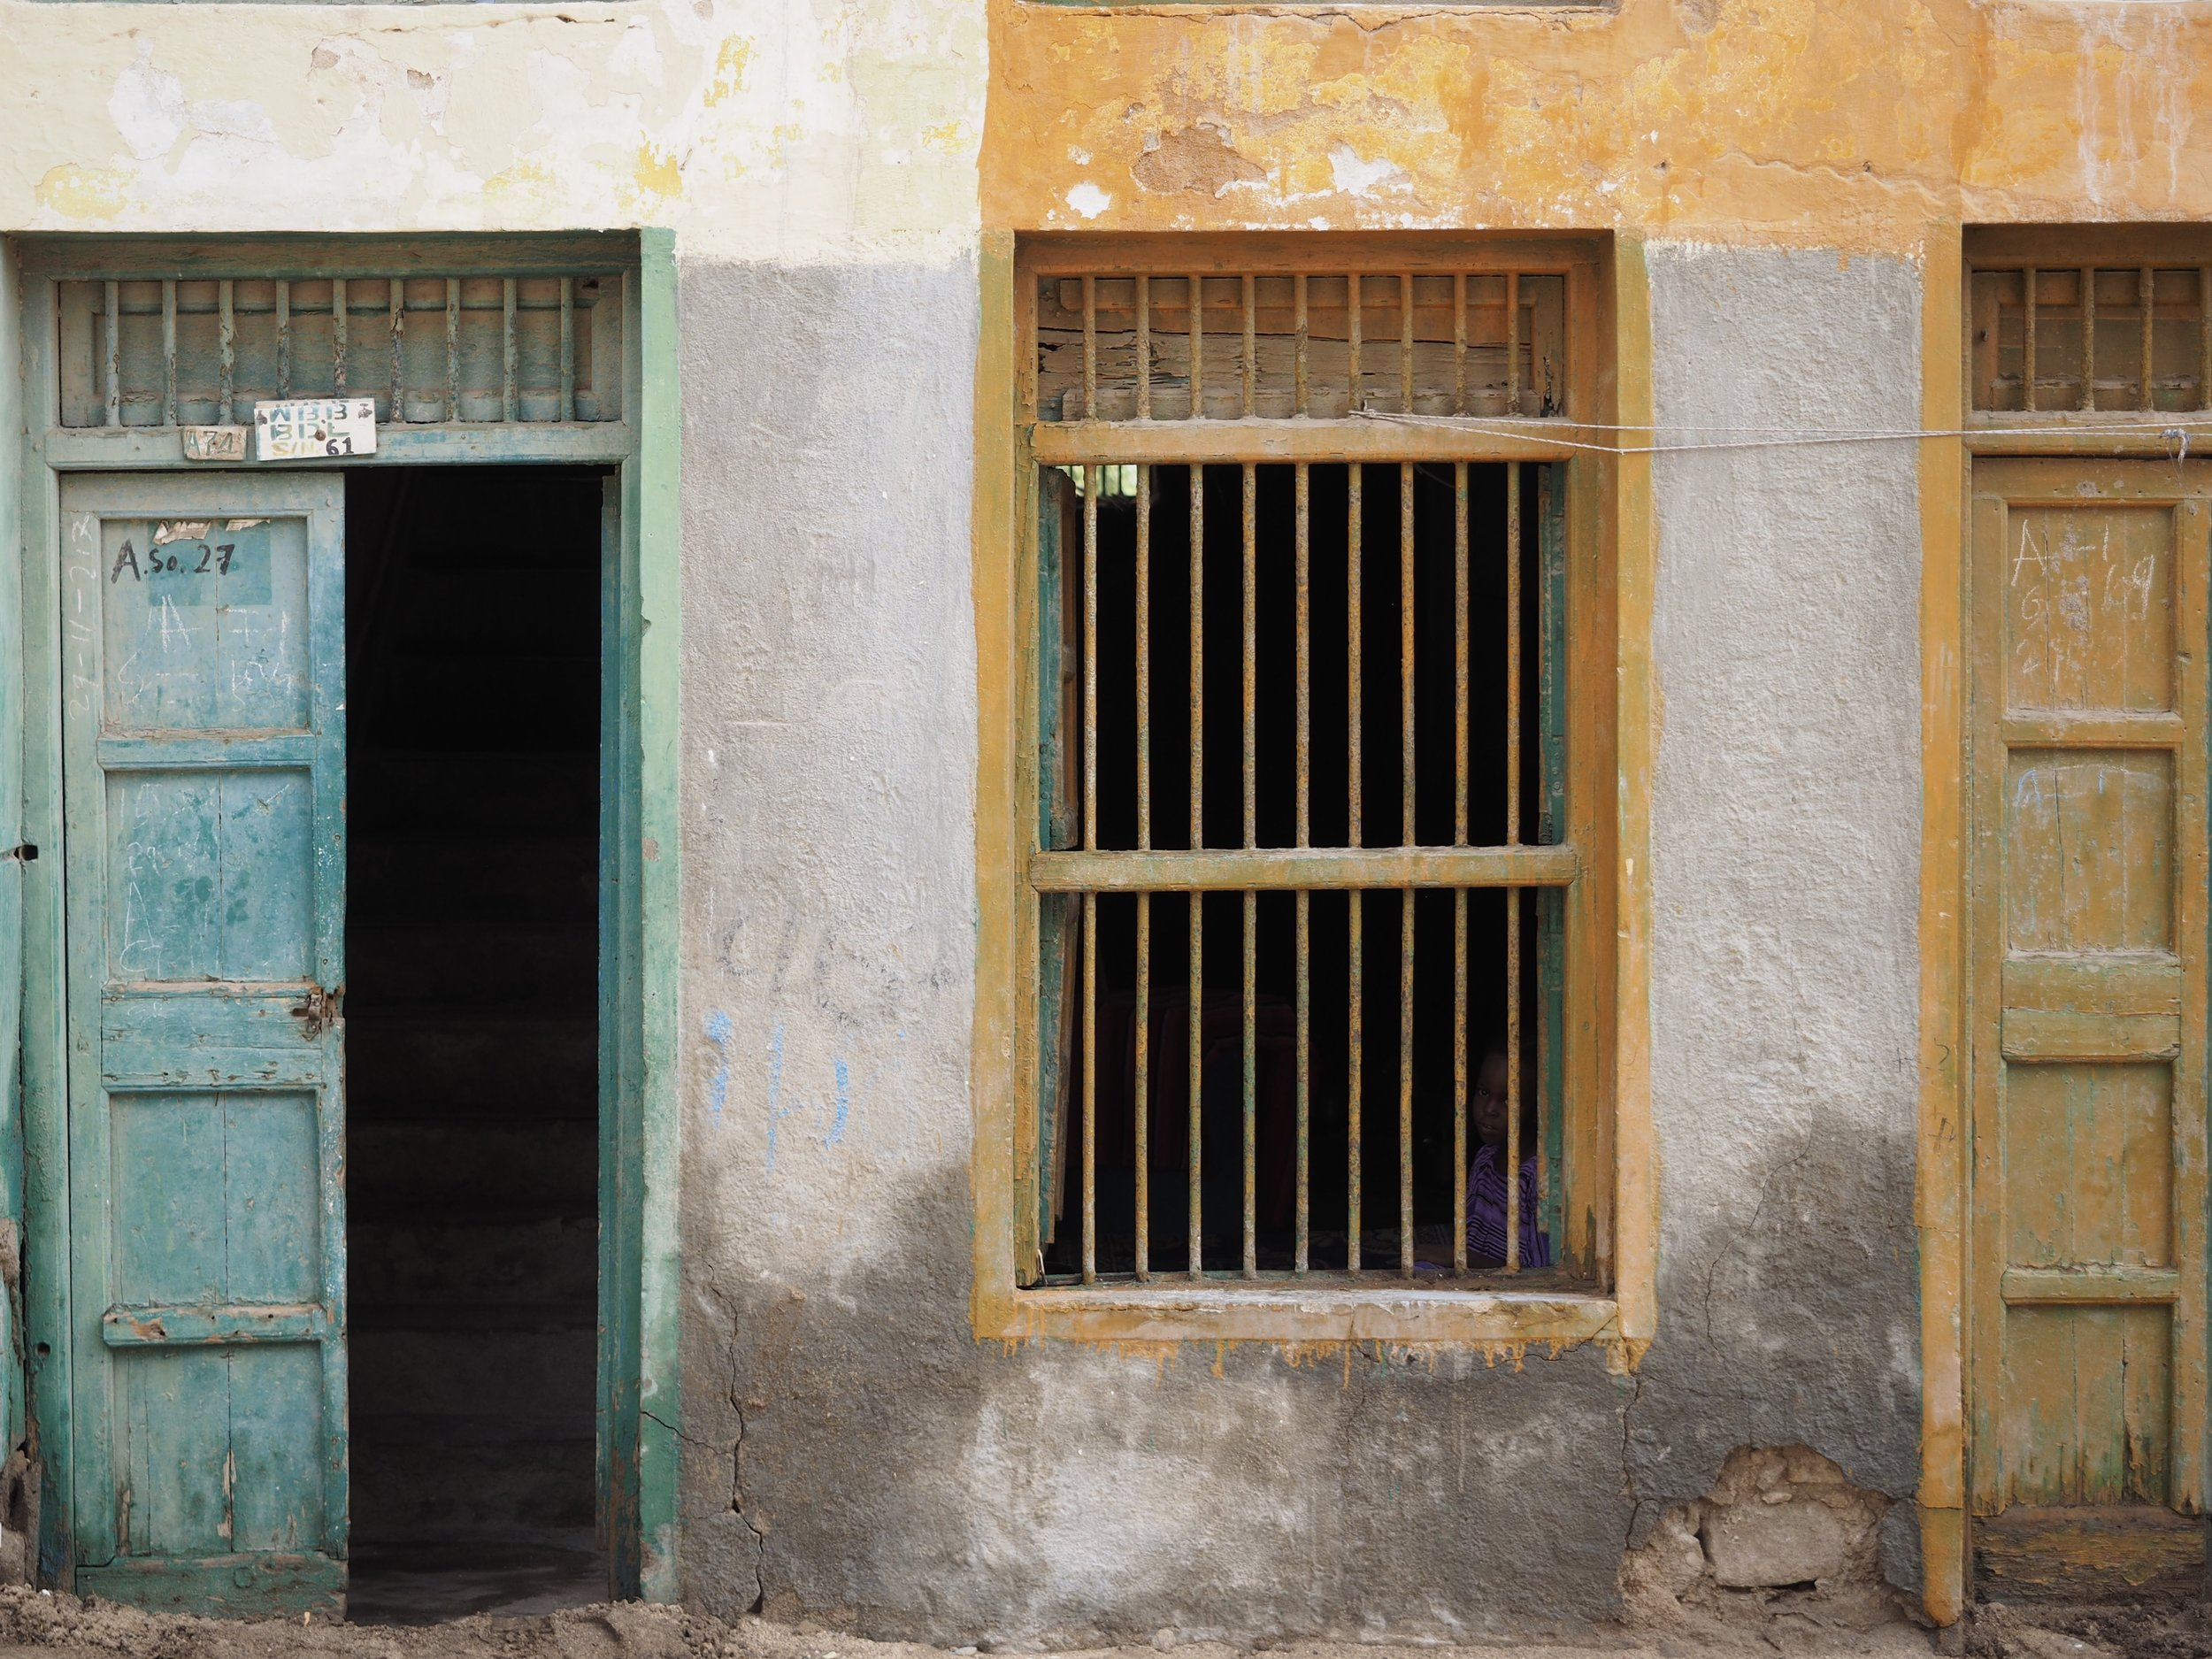 A child keeps a safe distance behind bars in Berbera.